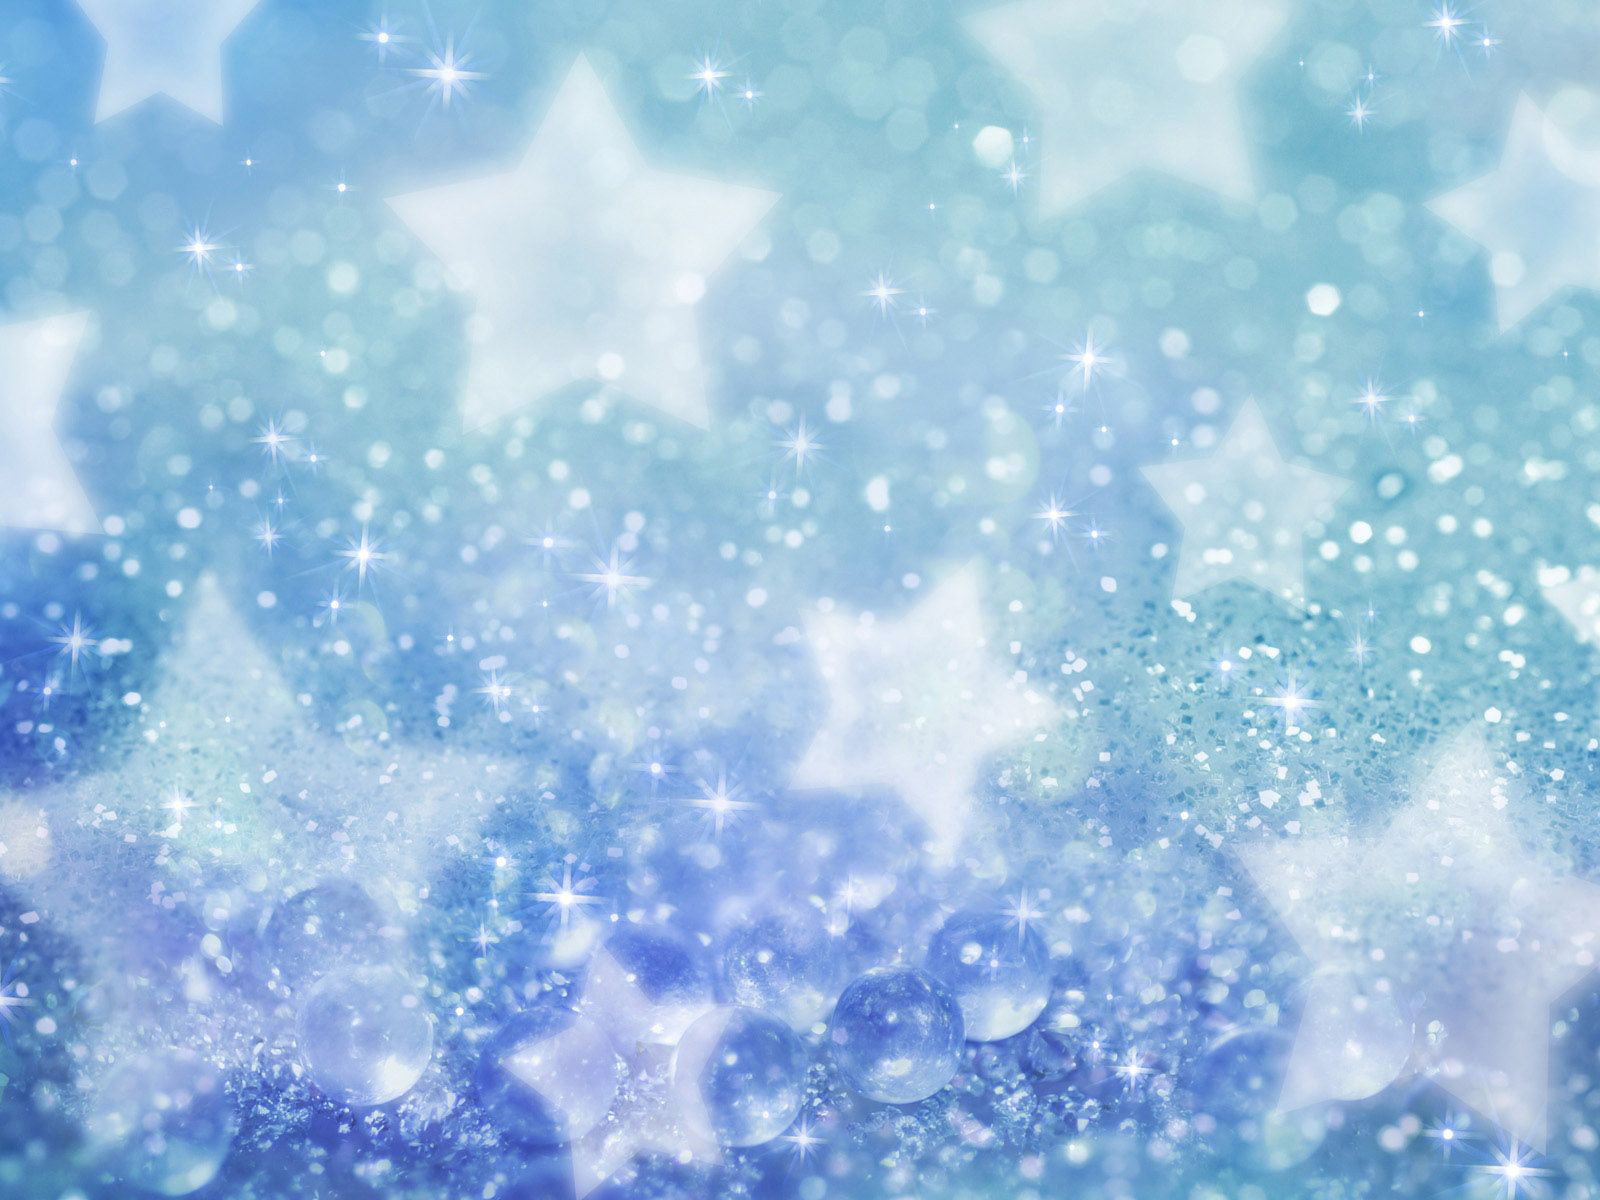 Blue Star Wallpaper - Download Wallpaper